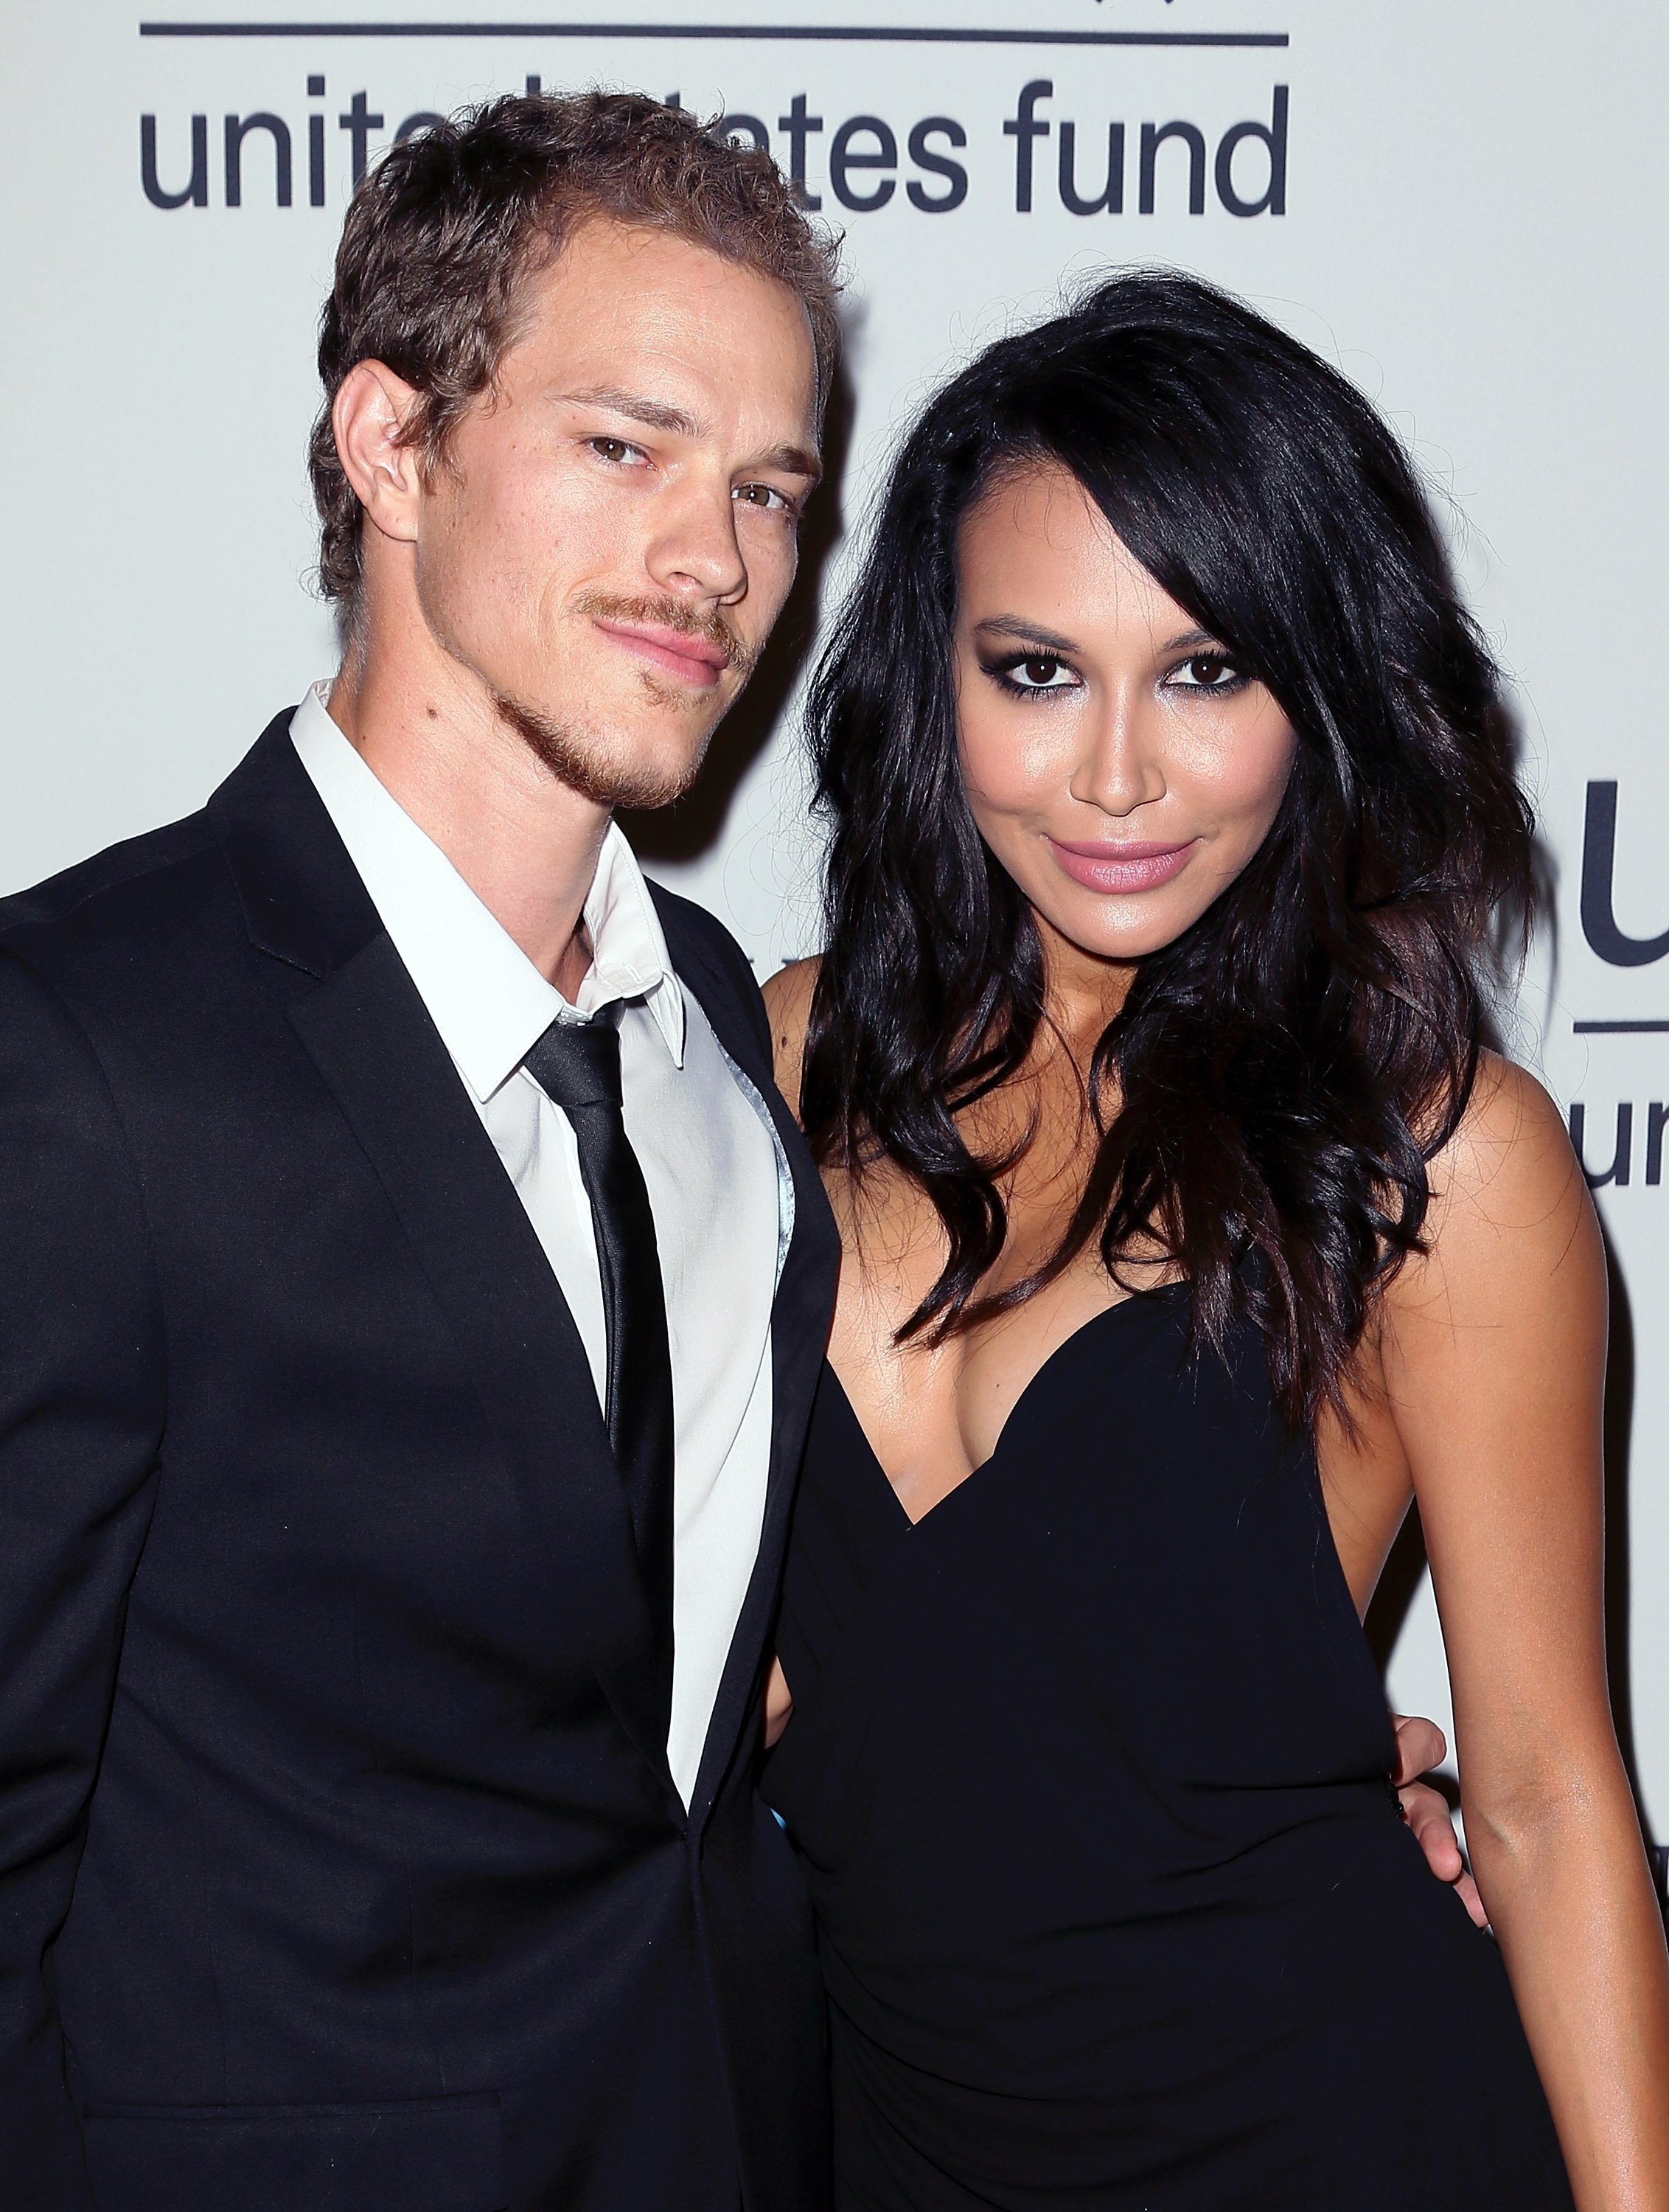 The late Naya Rivera and Ryan Dorsey pictured at the UNICEF's Next Generation's 2nd Annual UNICEF Masquerade Ball, 2014 in Los Angeles, California. | Photo: Getty Images